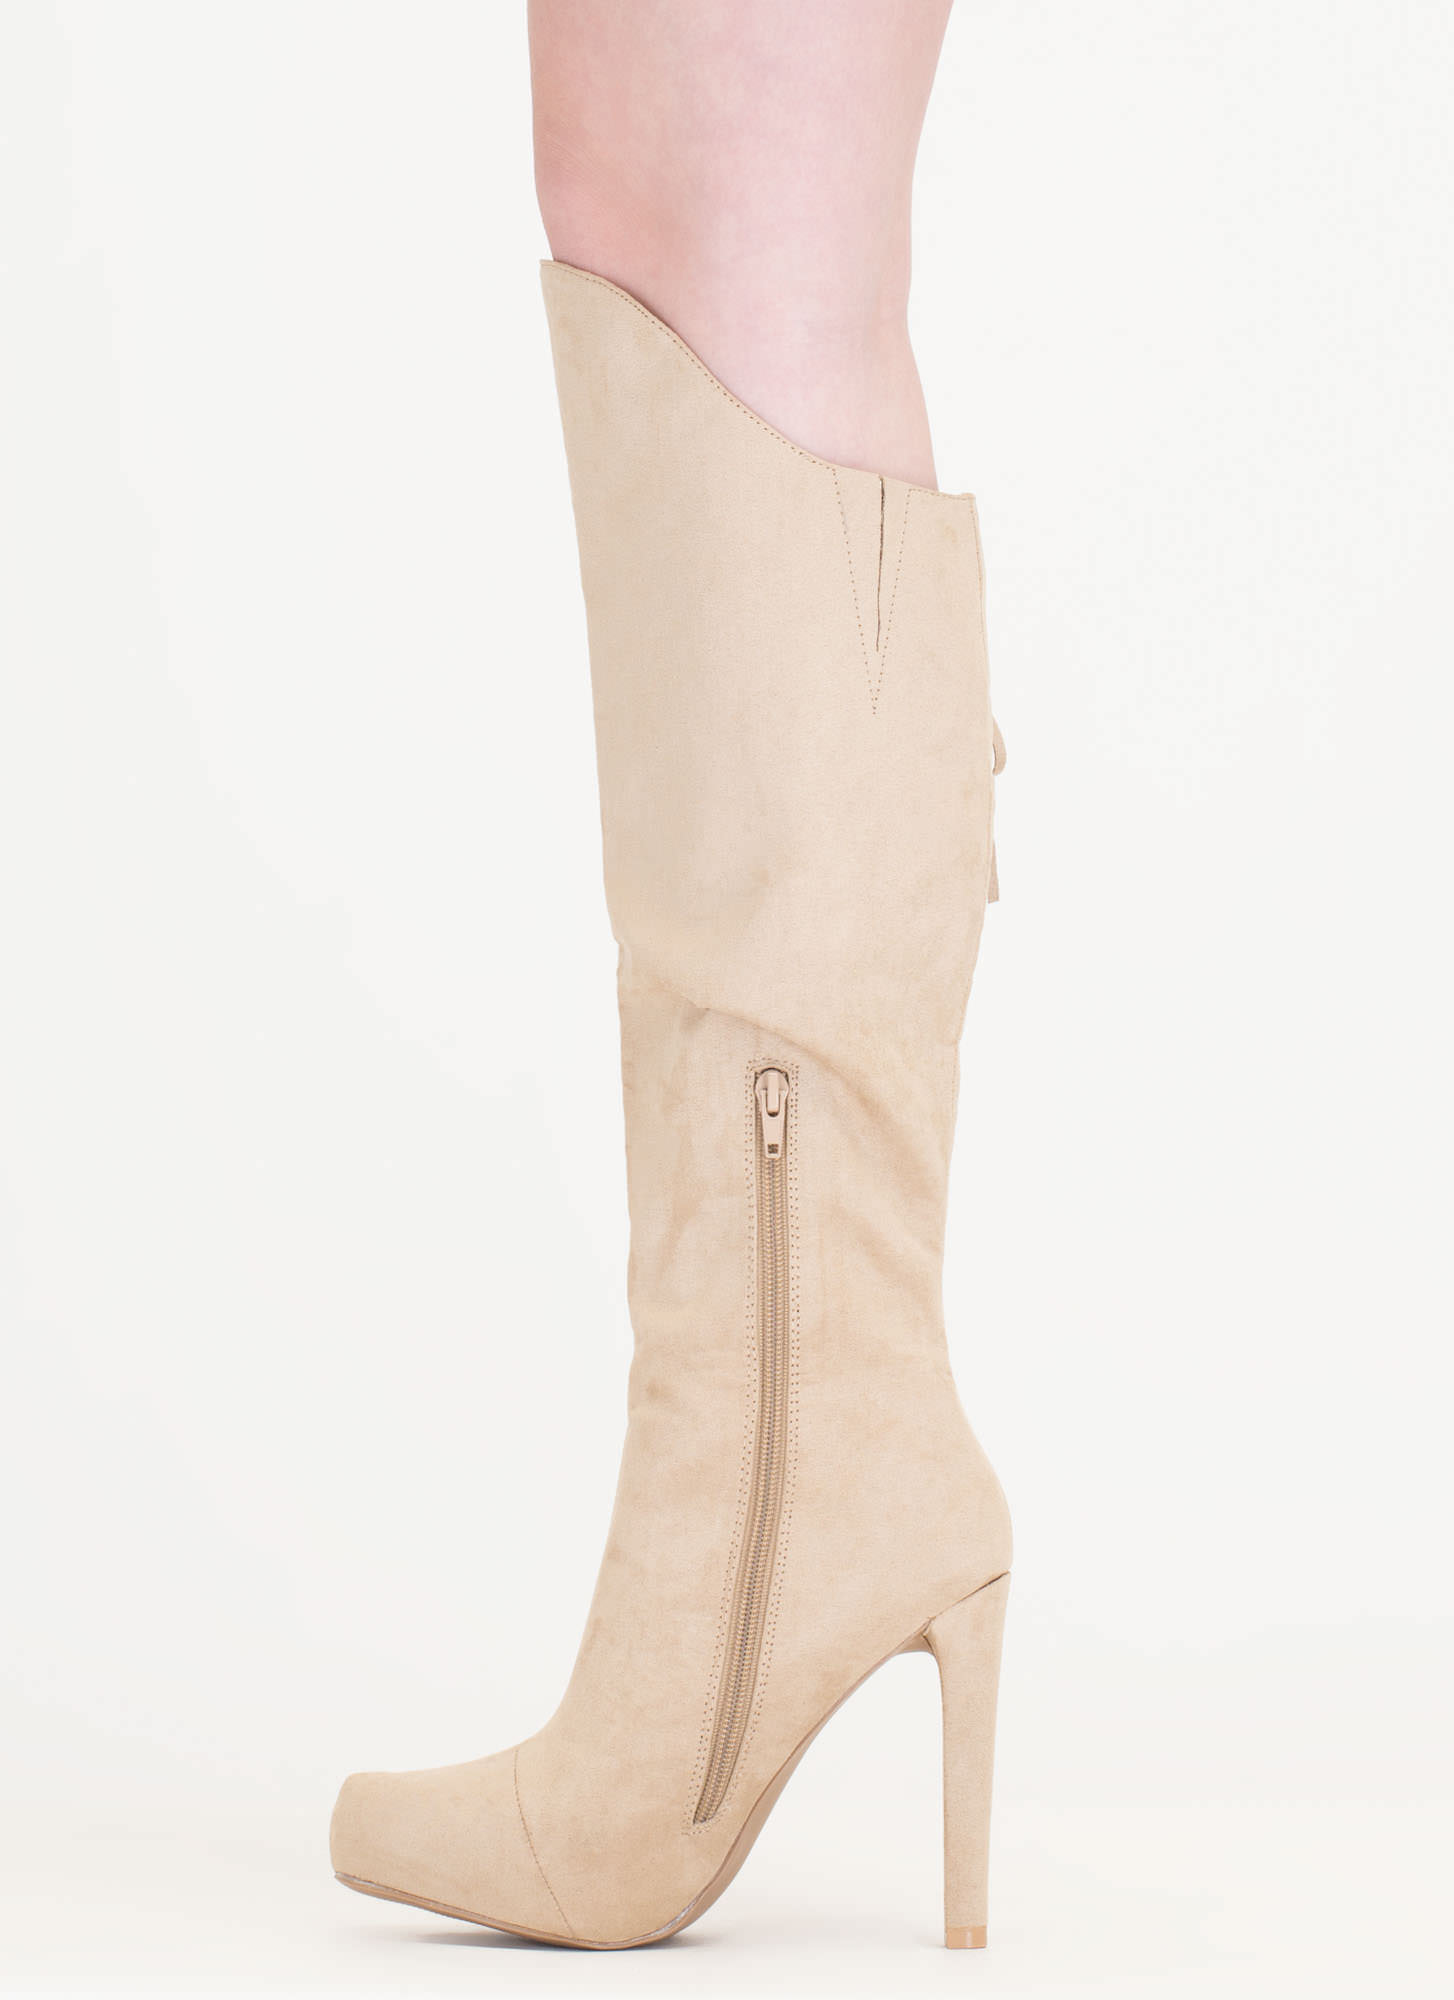 Long Live Fringe Over-The-Knee Boots TAUPE (Final Sale)